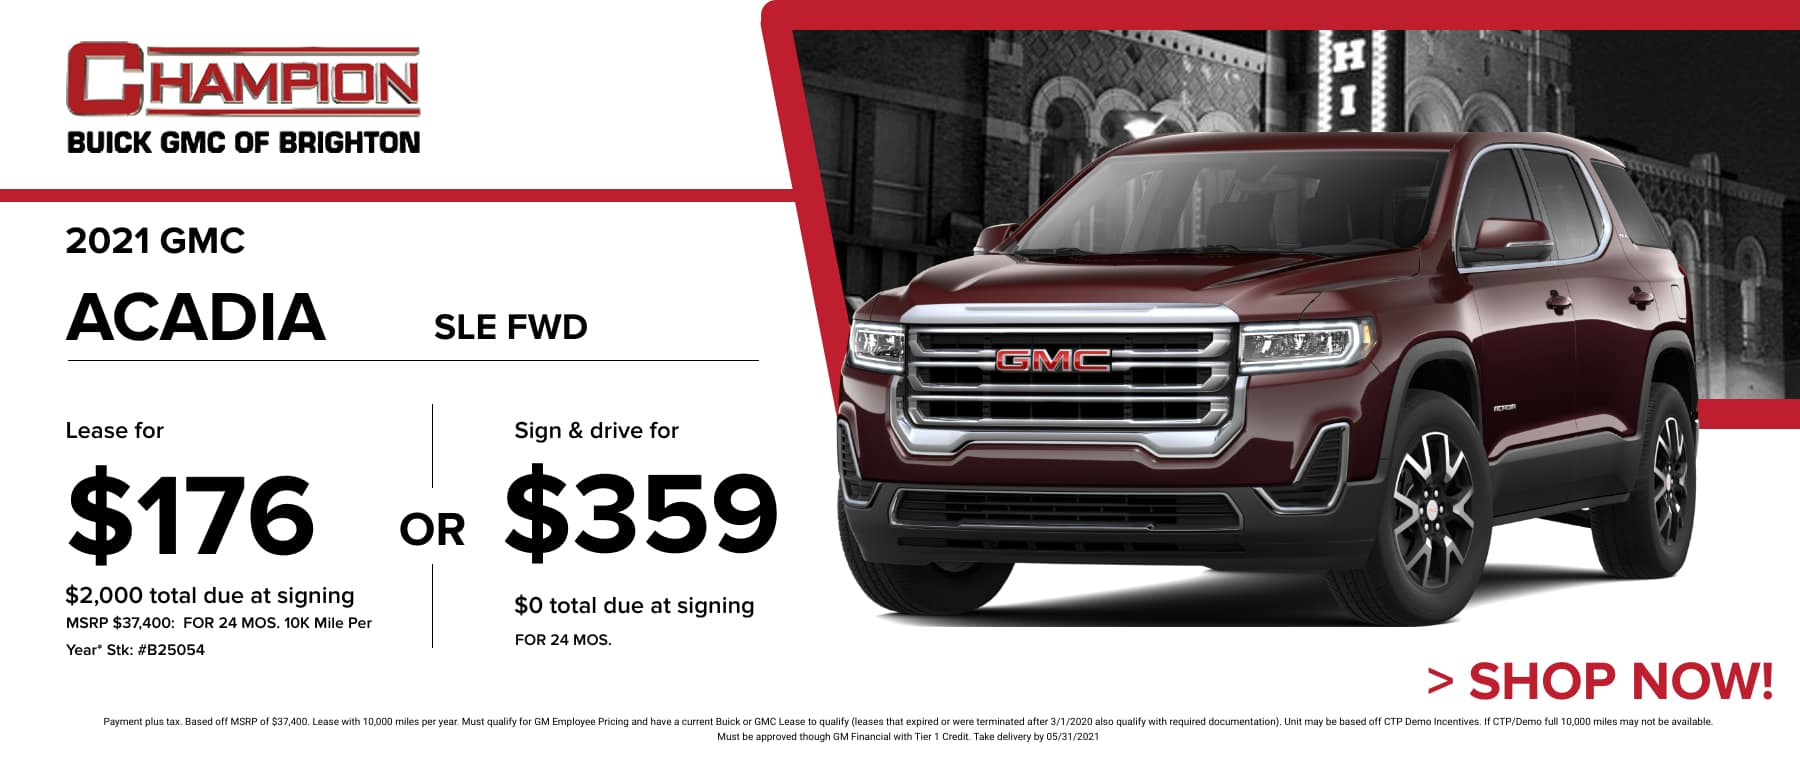 2021 GMC Acadia SLE FWD - Lease for just: $176 per month for 24 months $2,000 total due at signing. Sign & Drive for $359 per month for 24 months. *Stock #B25054. MSRP: $37,400